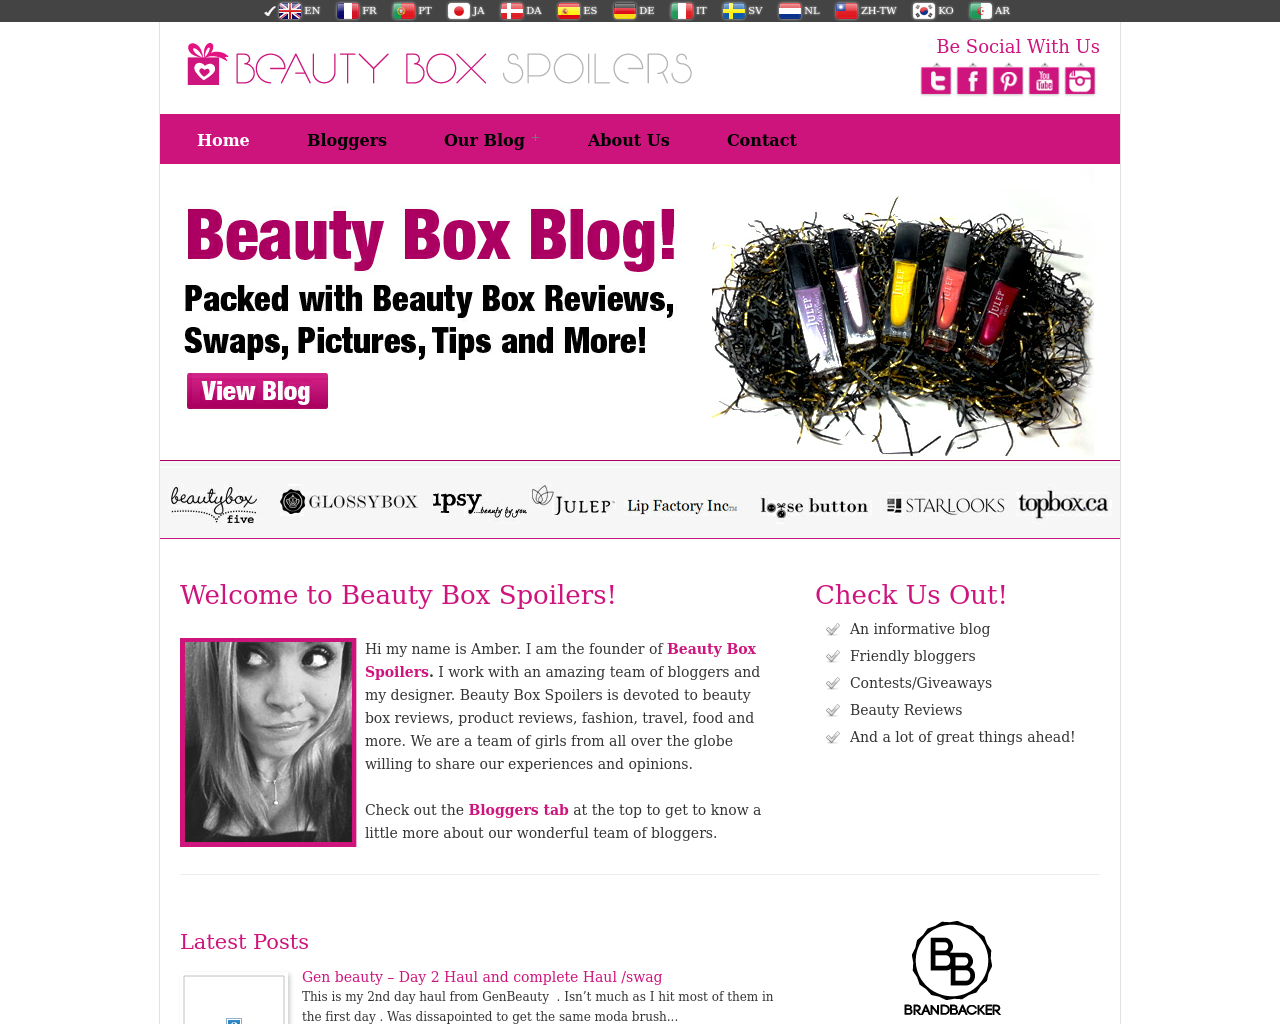 Beauty-Box-Spoilers-Advertising-Reviews-Pricing